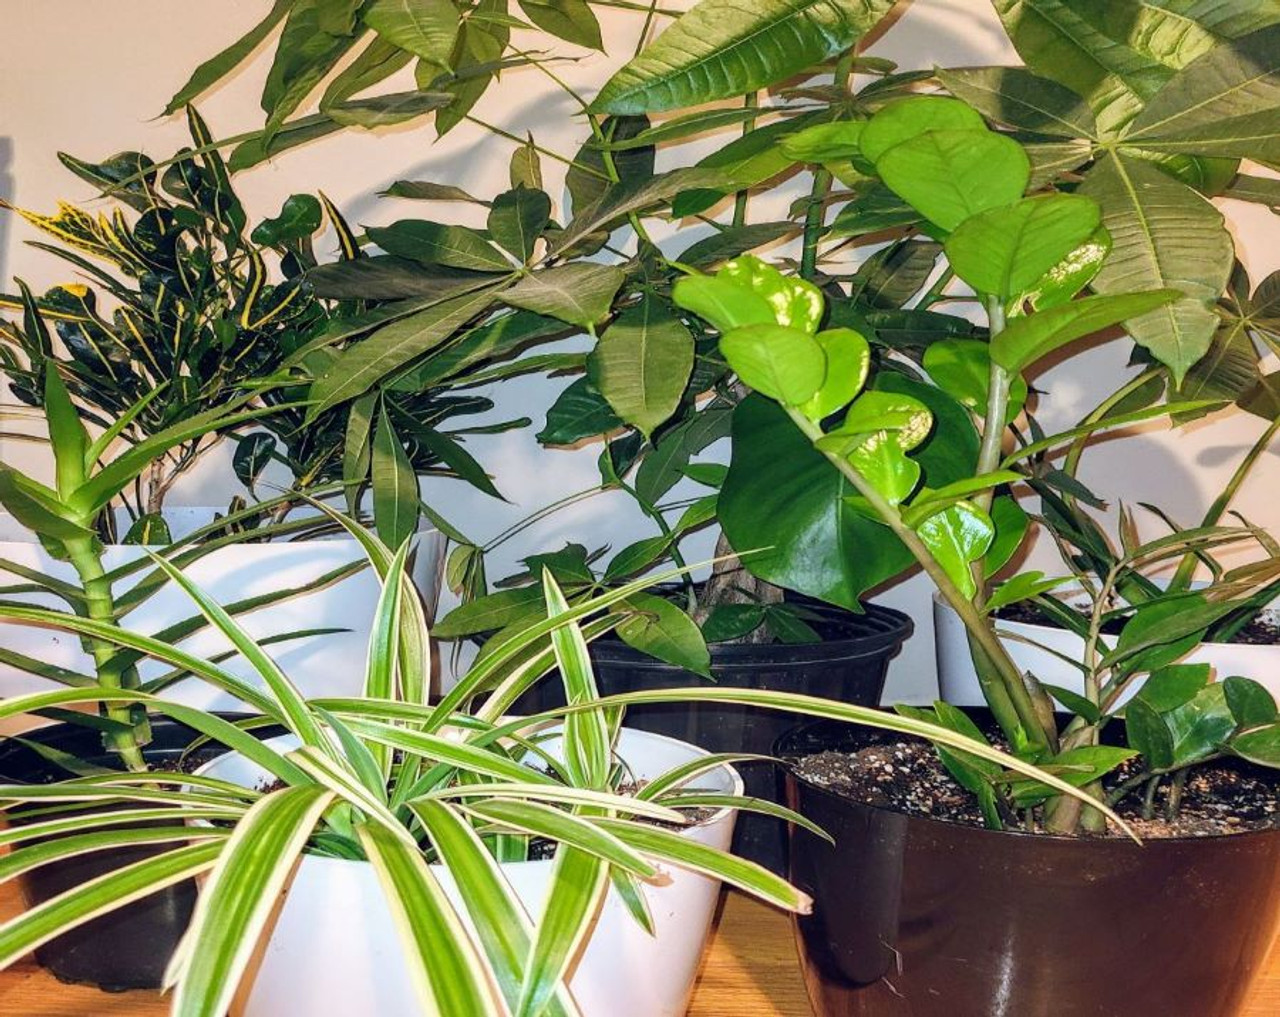 Different indoo plants and pots for sale including monstera, snake plant, zz, spider